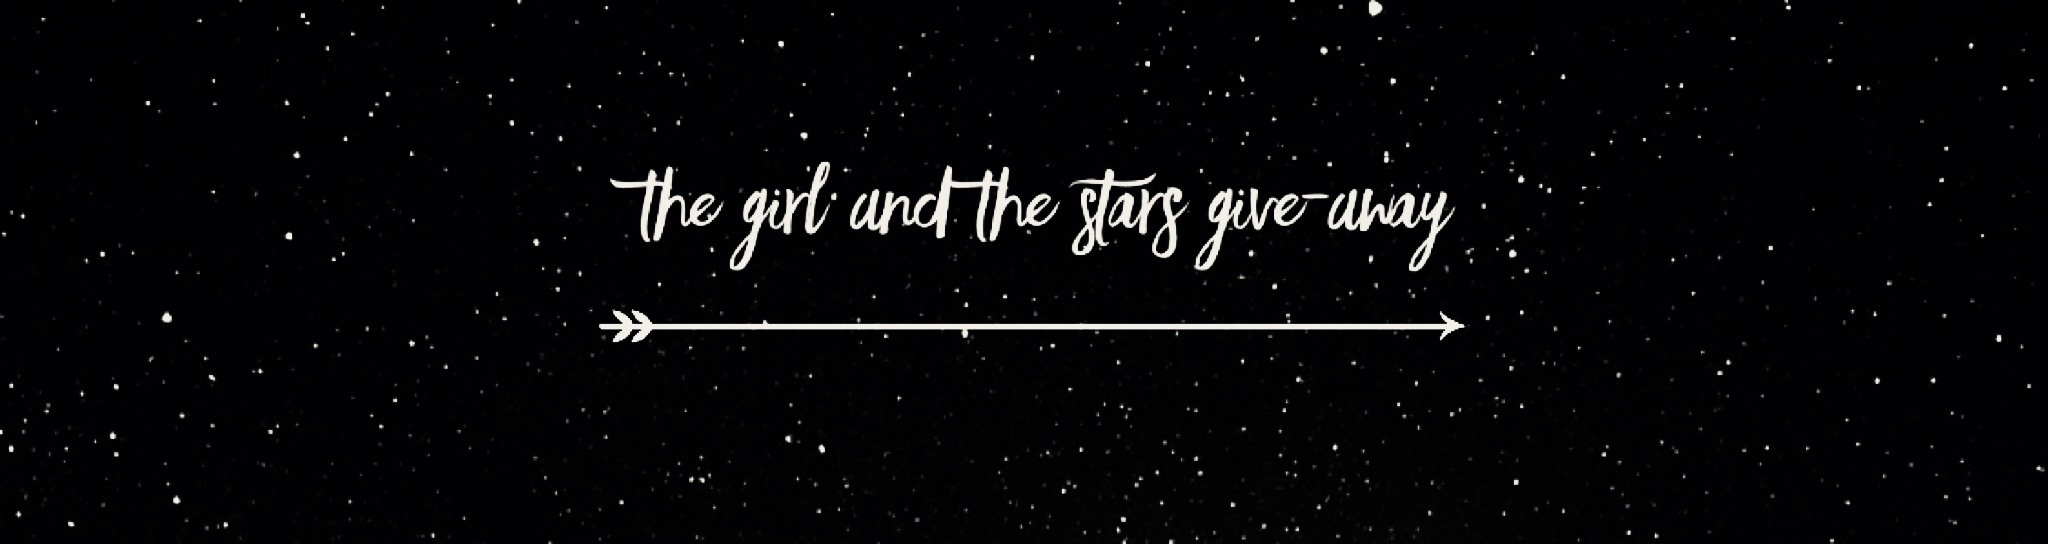 The Girl And The Stars Give-Away